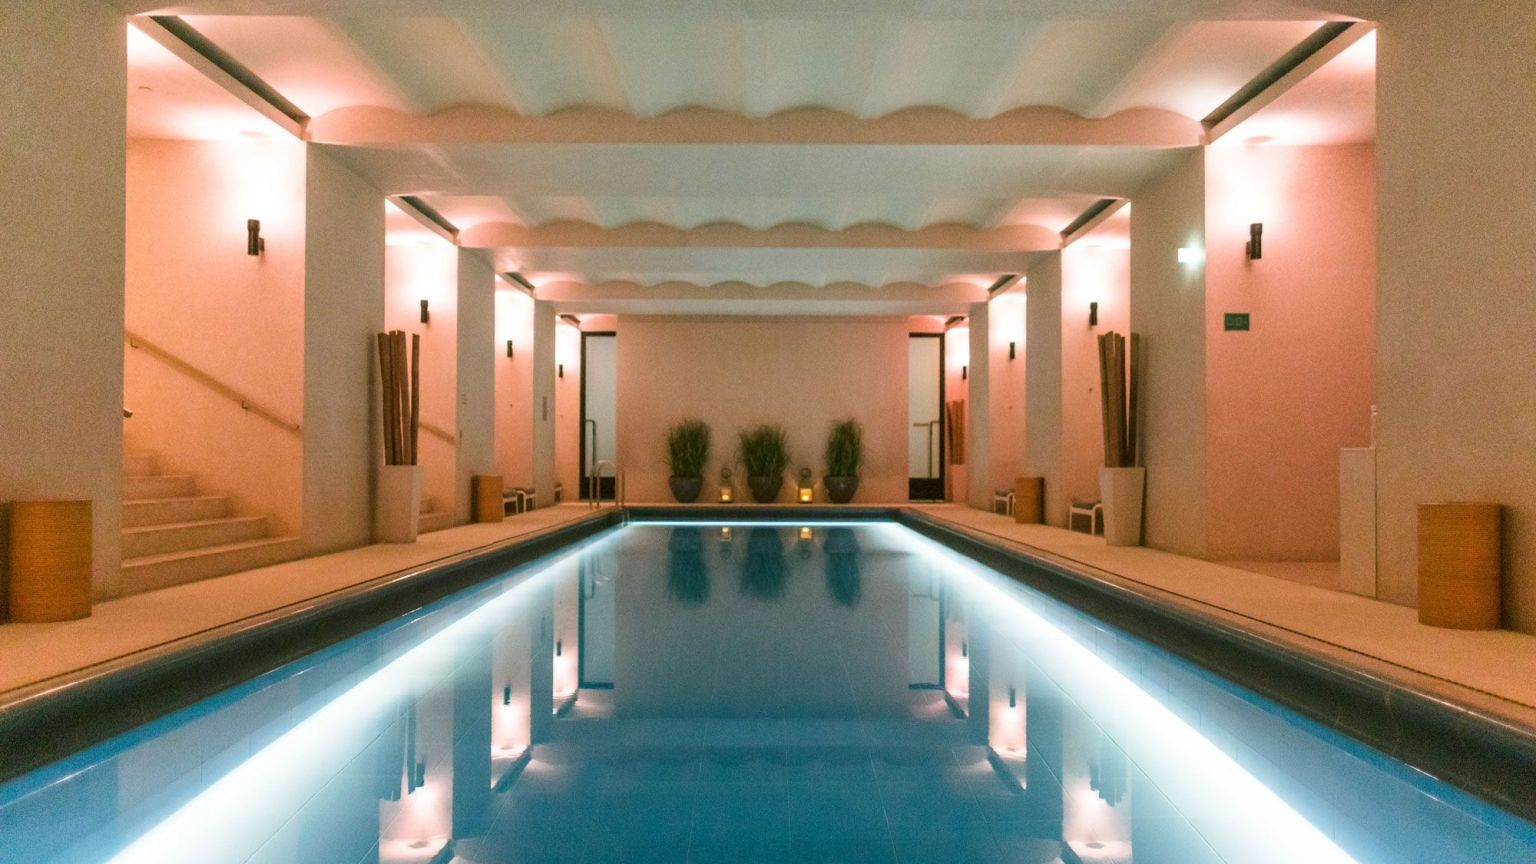 akasha holistic wellbeing centre spa gym central london hotel cafe royal